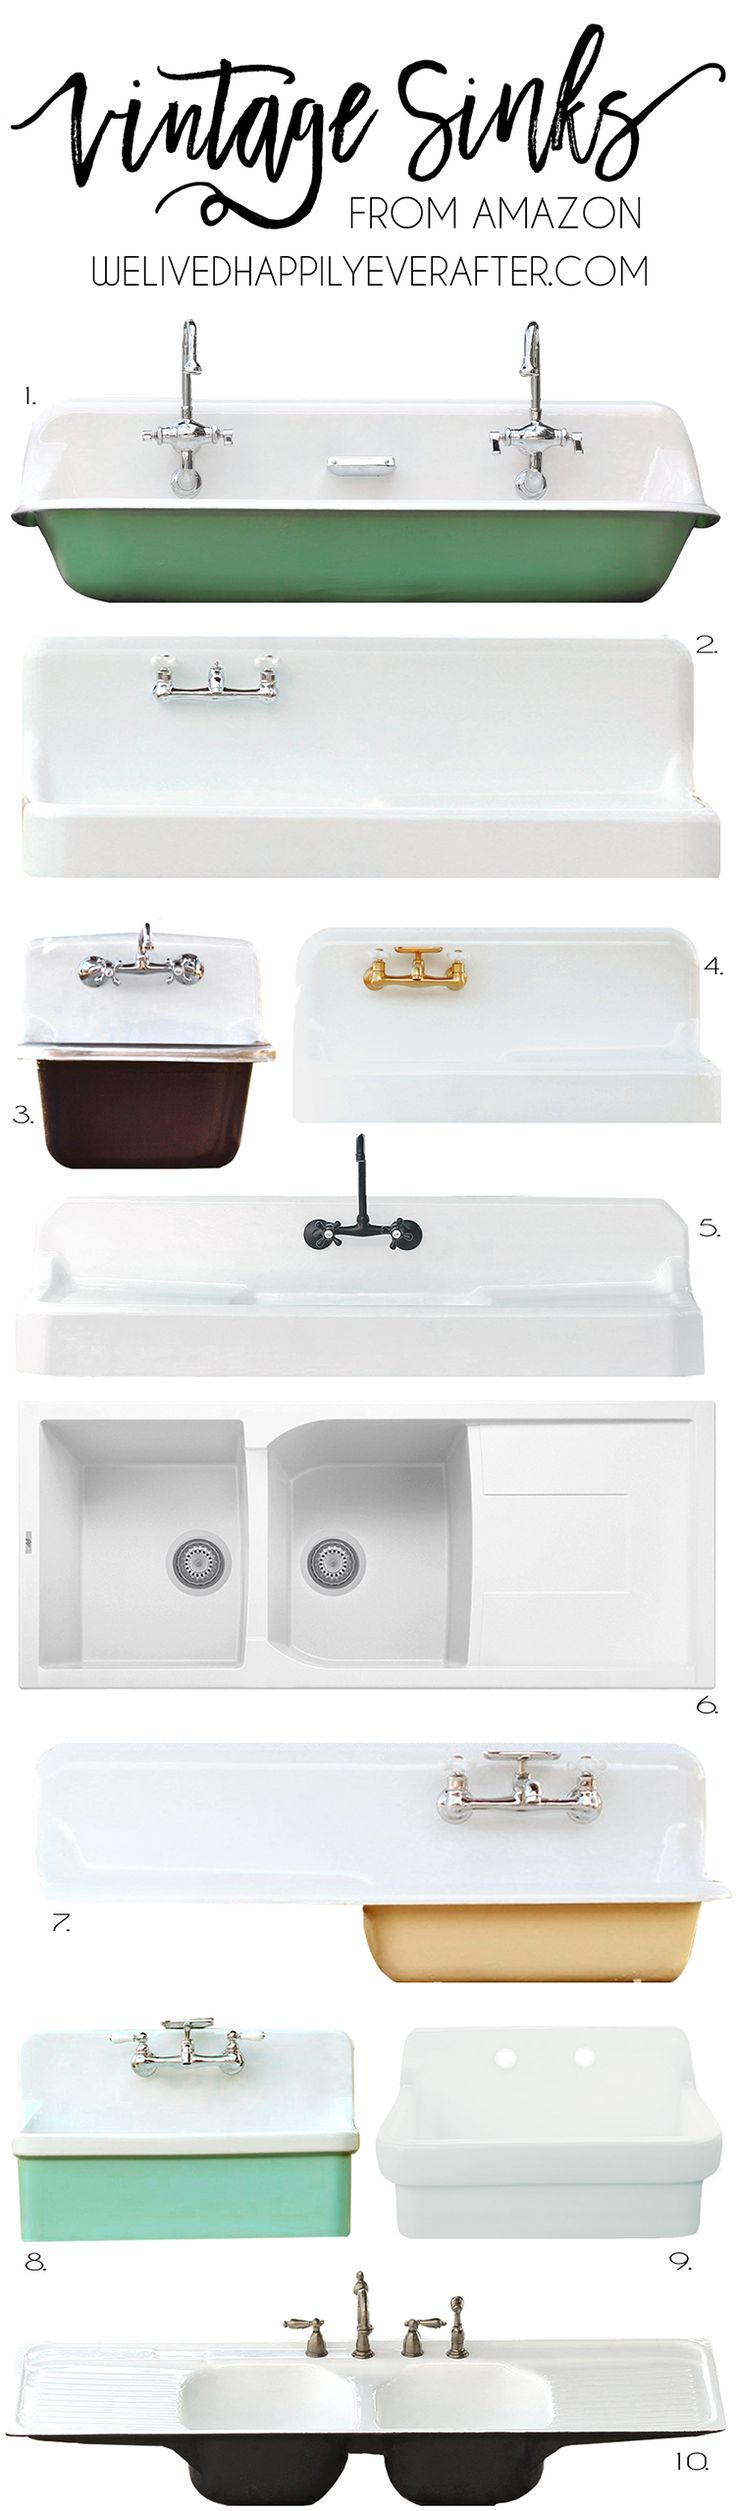 Vintage Looking Farmhouse Sinks From Amazon (Apron & Drainboard Style)